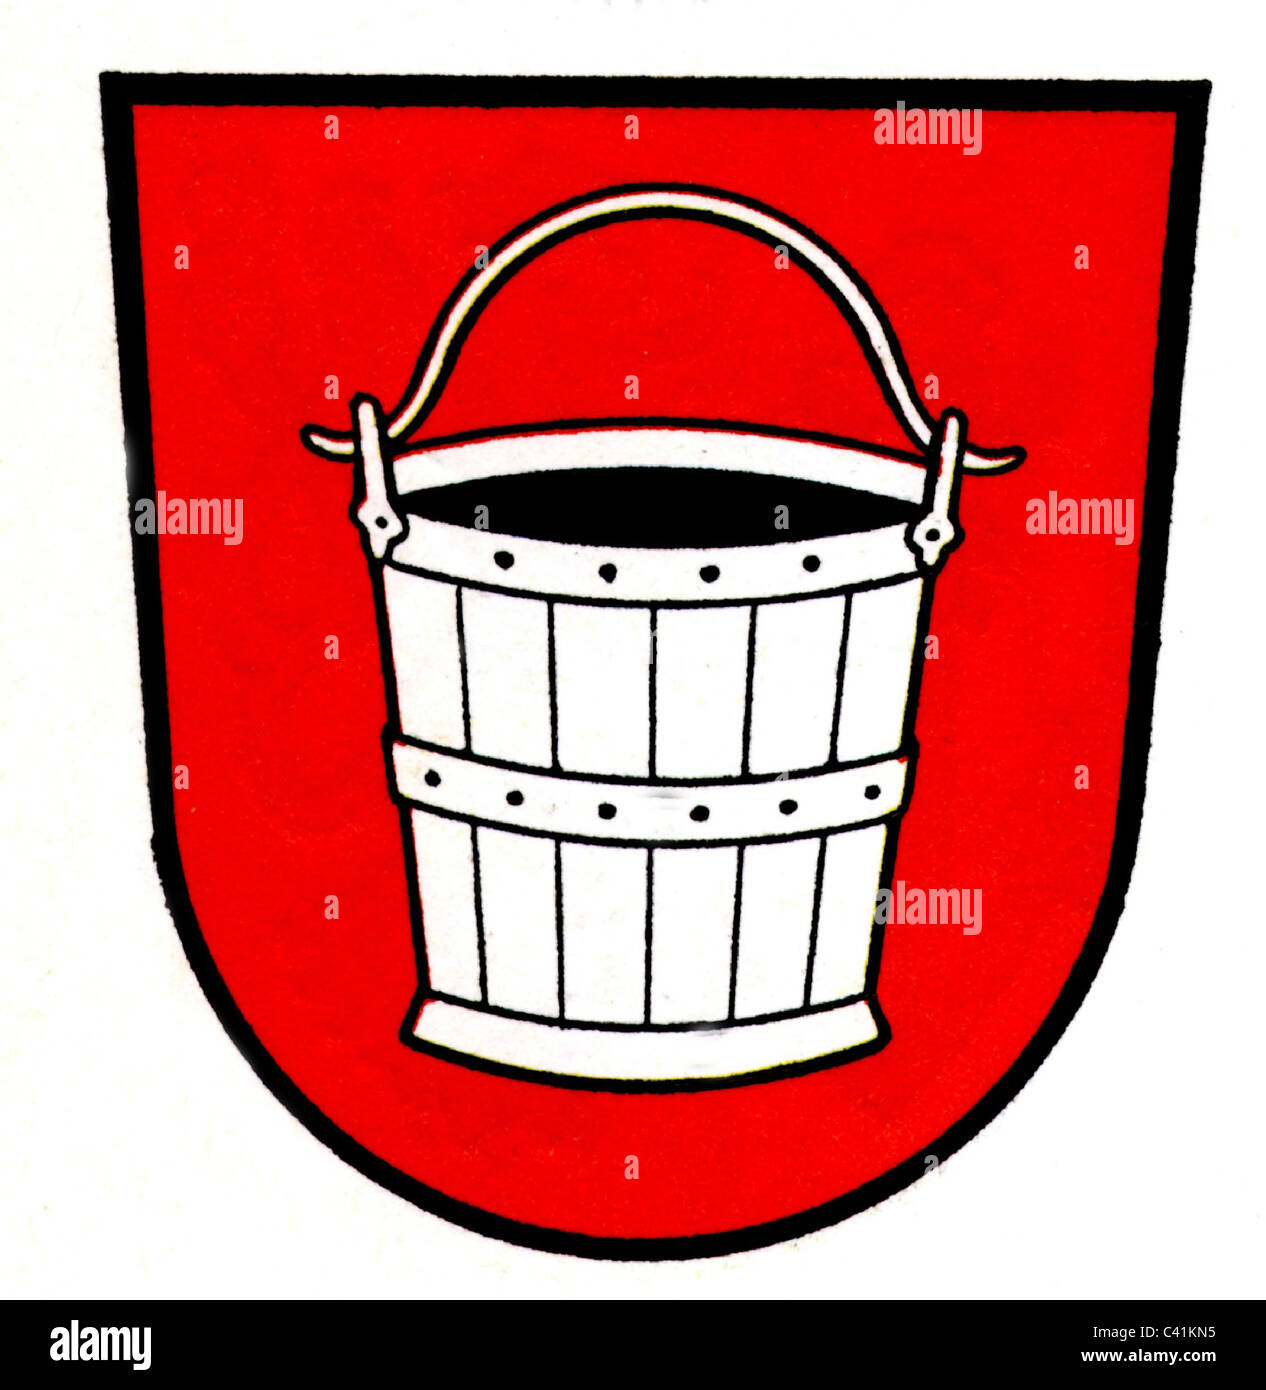 coat of arms / emblems, Emmerich am Rhein, city arms, North Rhine-Westphalia, Germany, Additional-Rights-Clearences - Stock Image